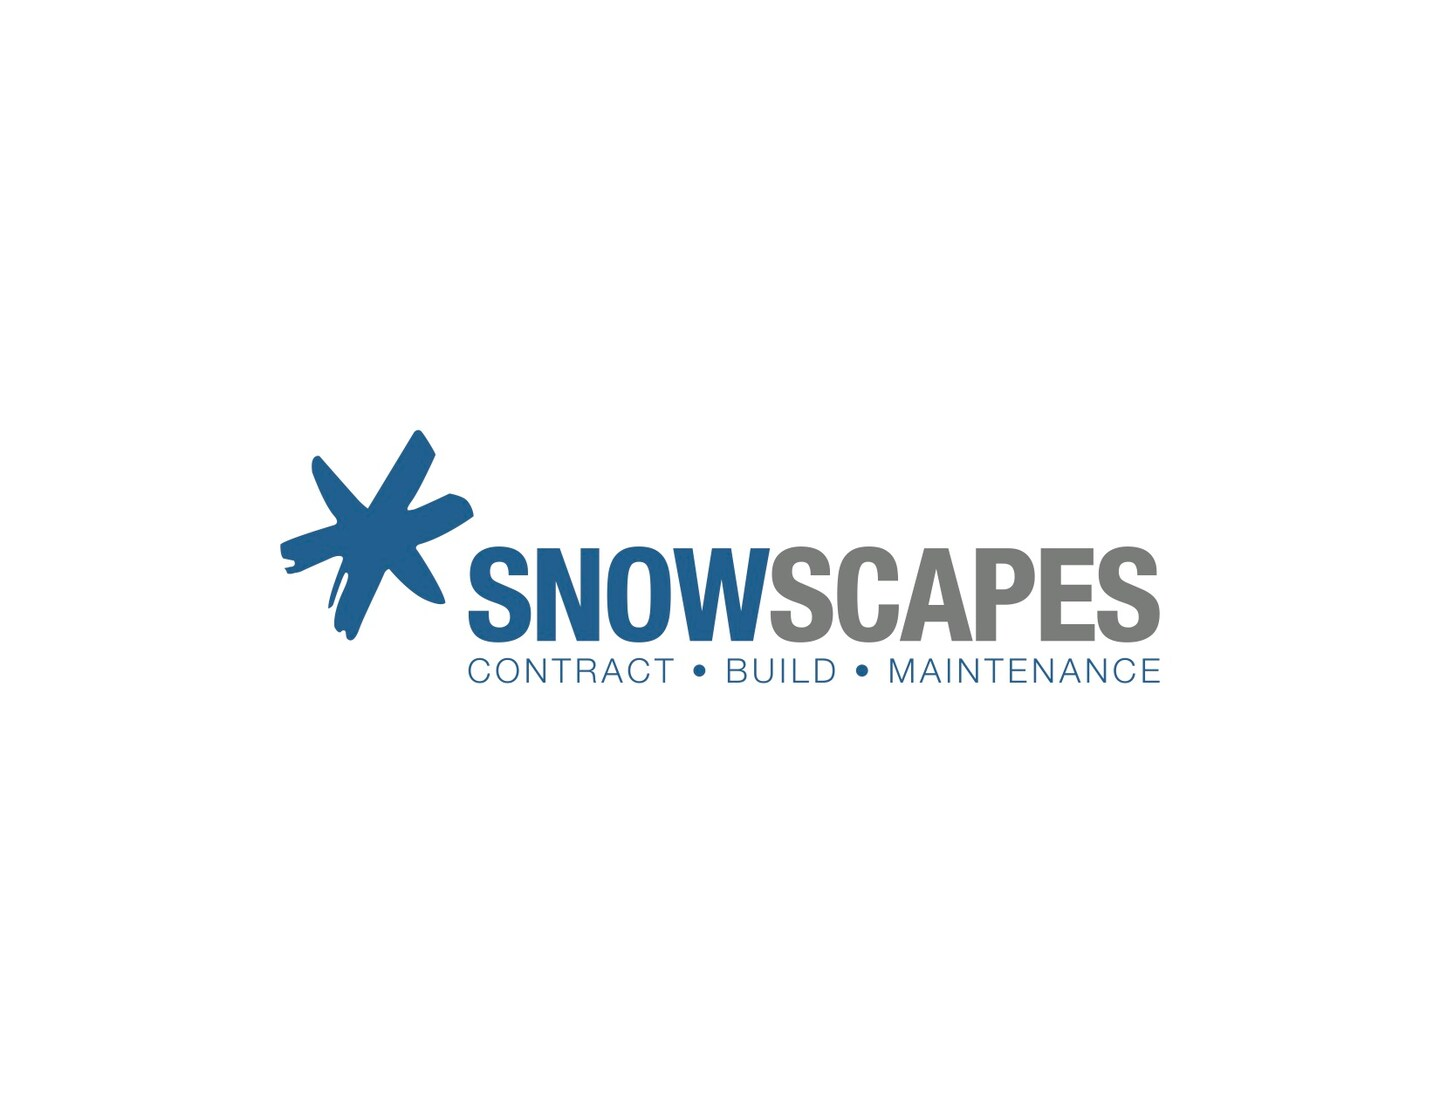 Snowscapes General Contracting